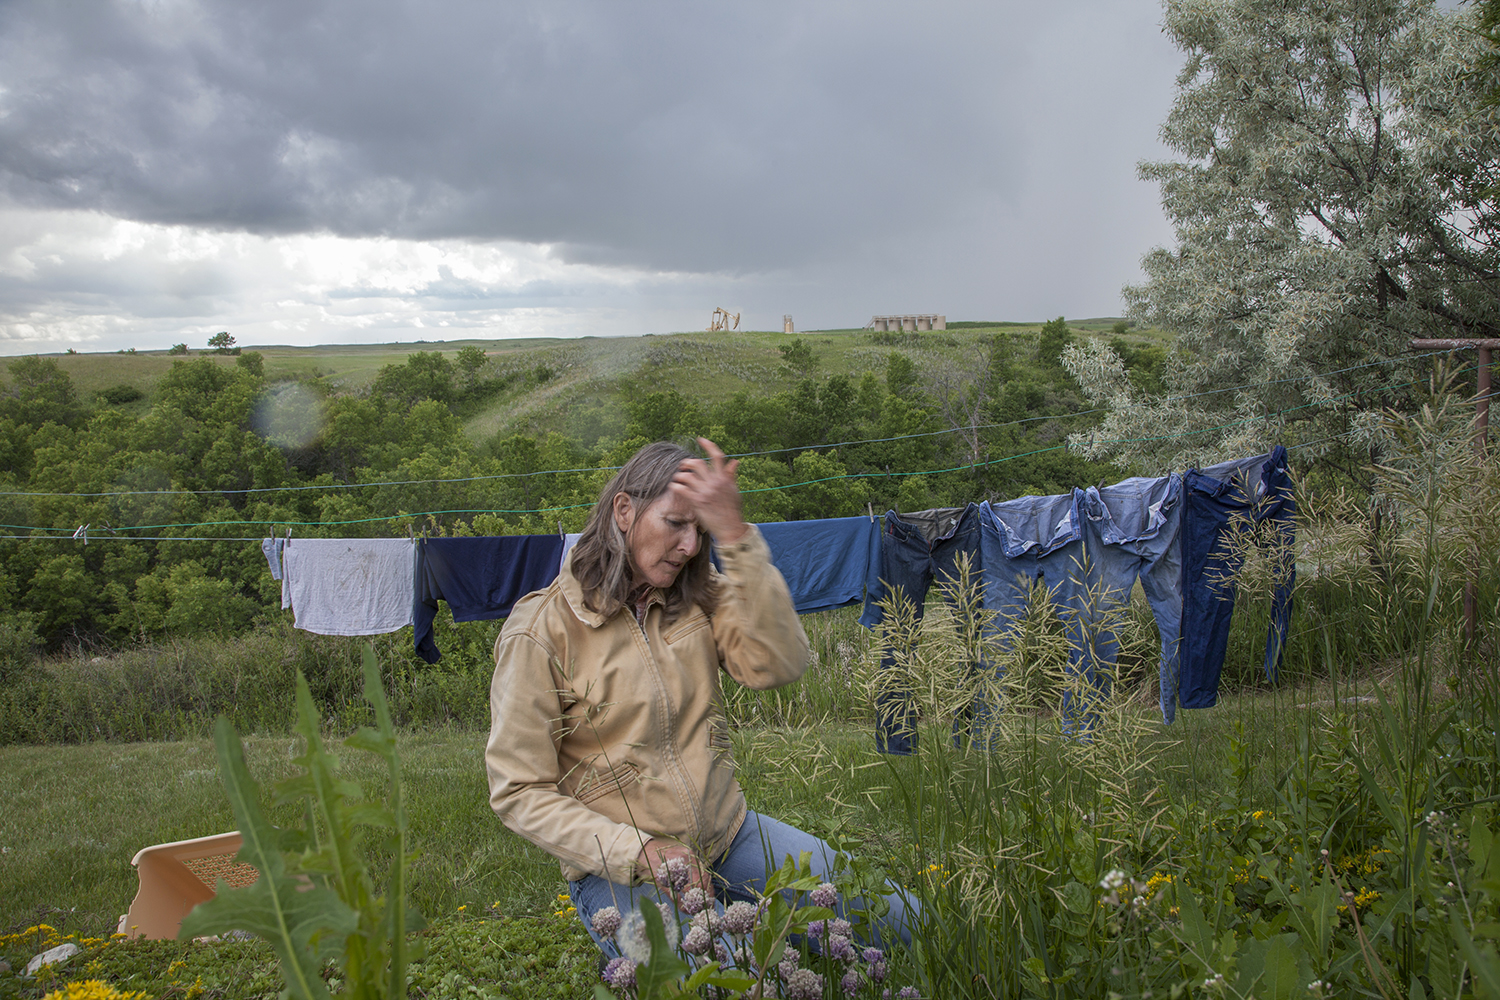 Brenda Jorgenson, whose family does not own underlying mineral rights, is distressed by the presence of oil wells on theirland  Tioga, ND. 2012